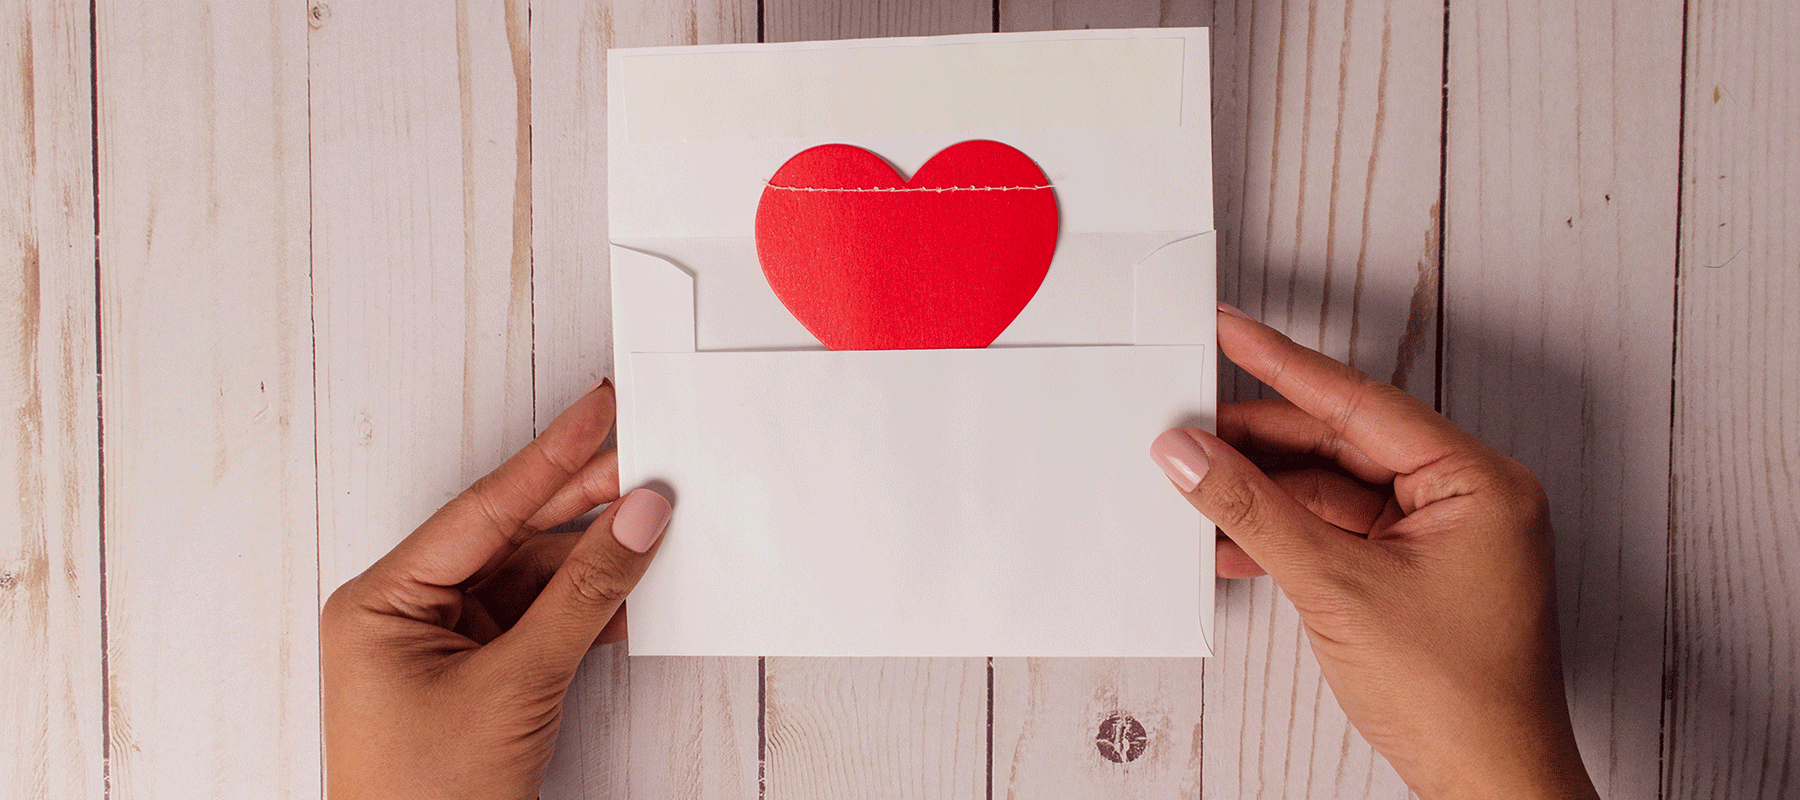 heroic-fundraising-featured-image_-hand-hearts-envelope